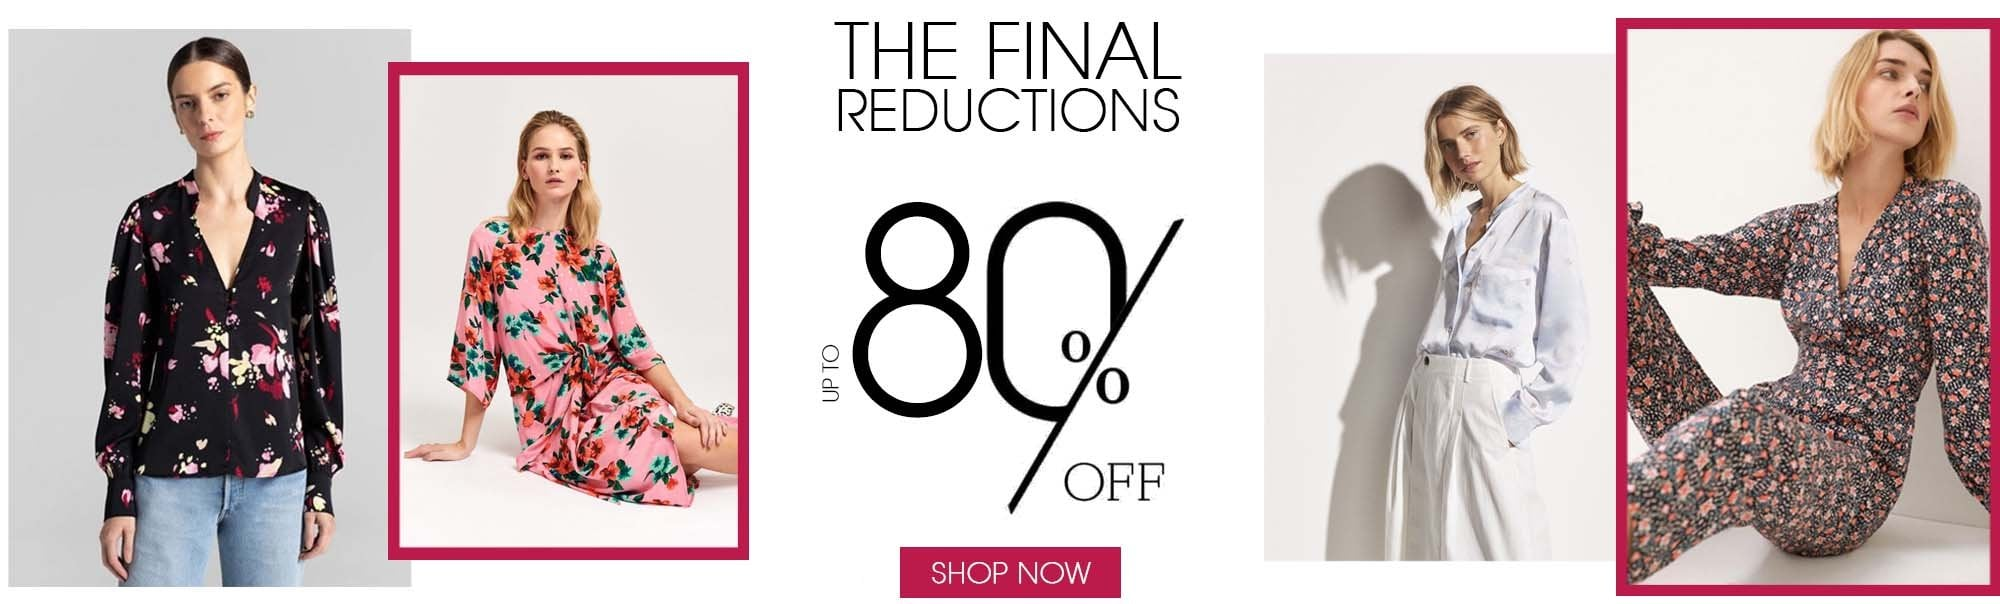 Further Reductions Up To 80% OFF